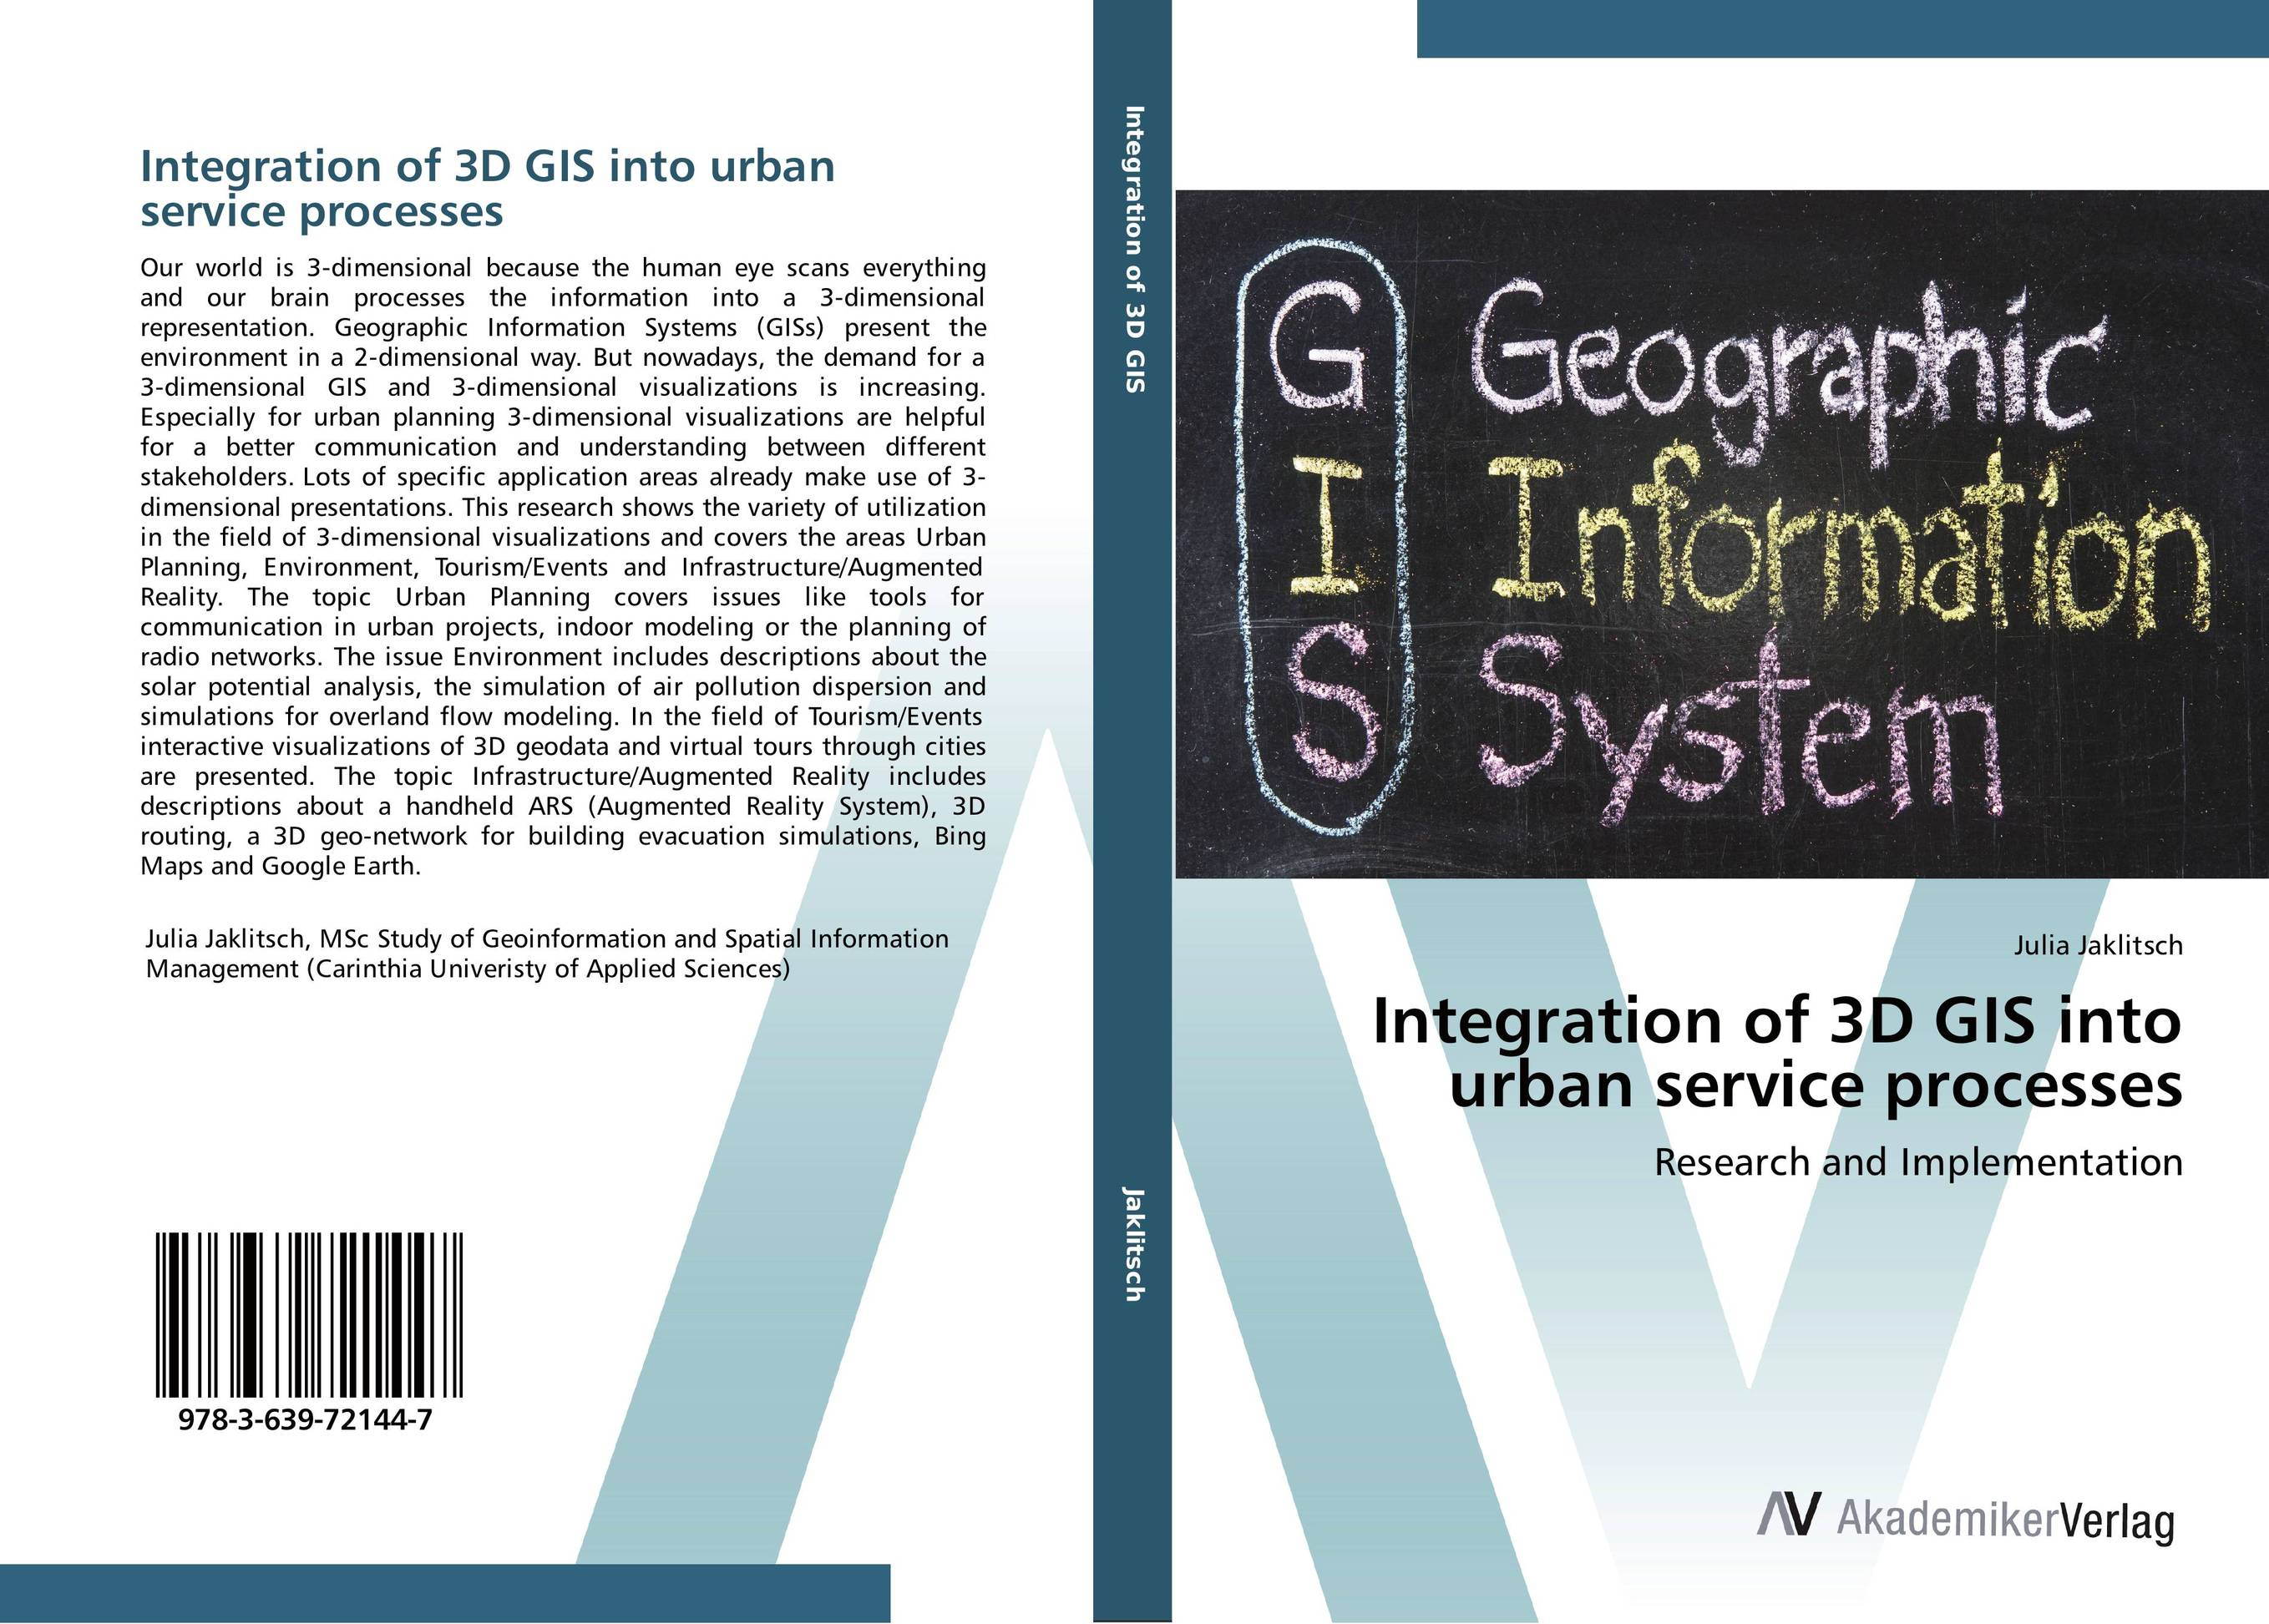 Integration of 3D GIS into urban service processes 3 dimensional scanner